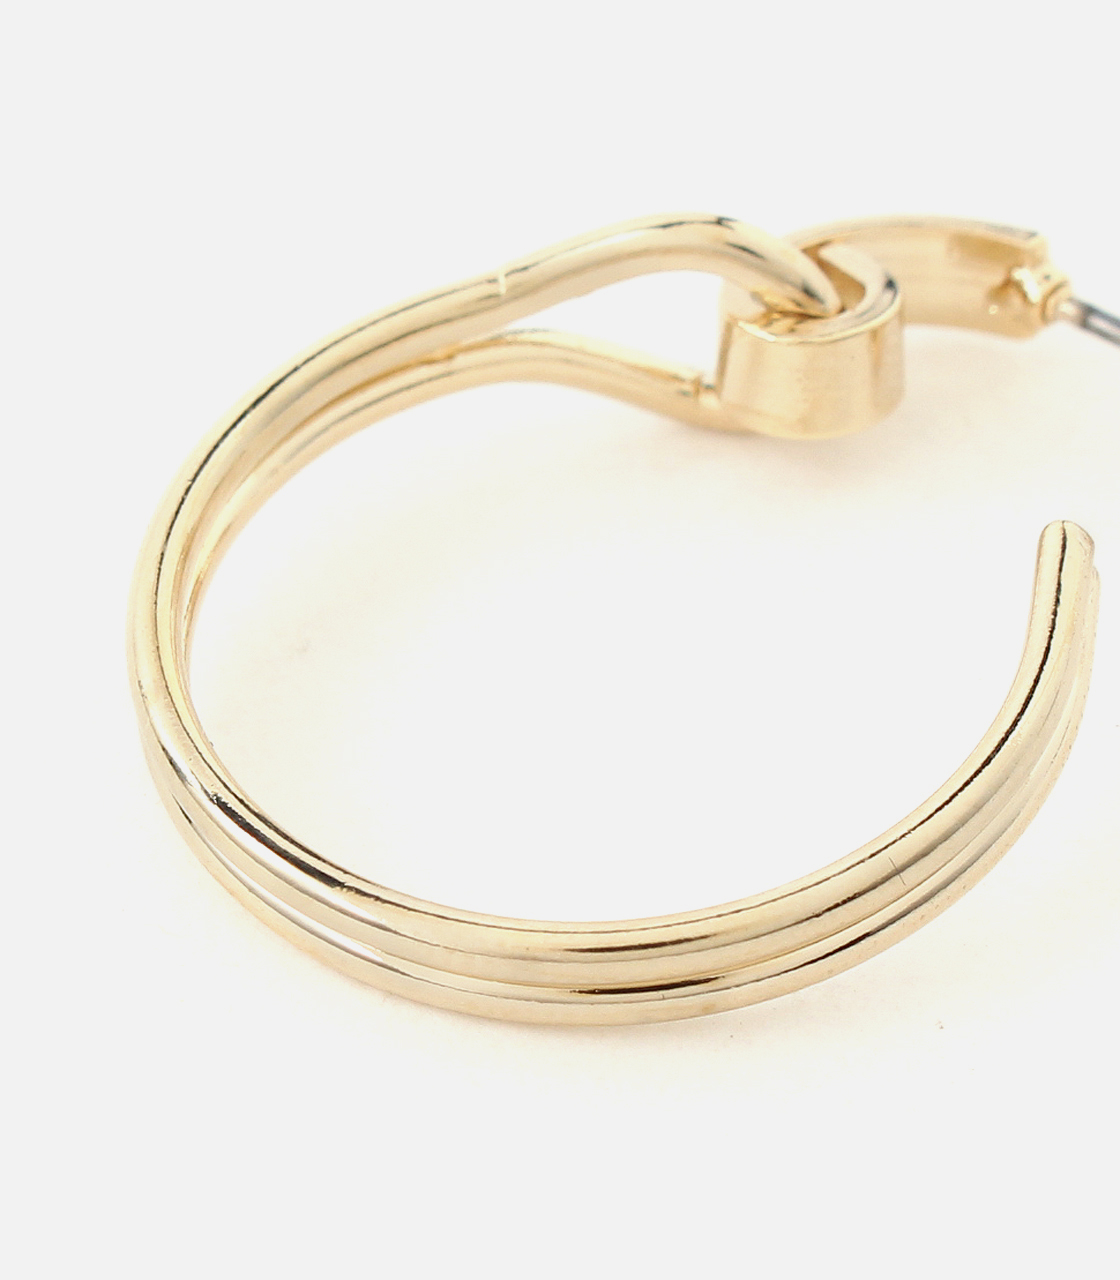 SWAYING HOOP EARRINGS/スウェイングフープピアス 詳細画像 L/GLD 4